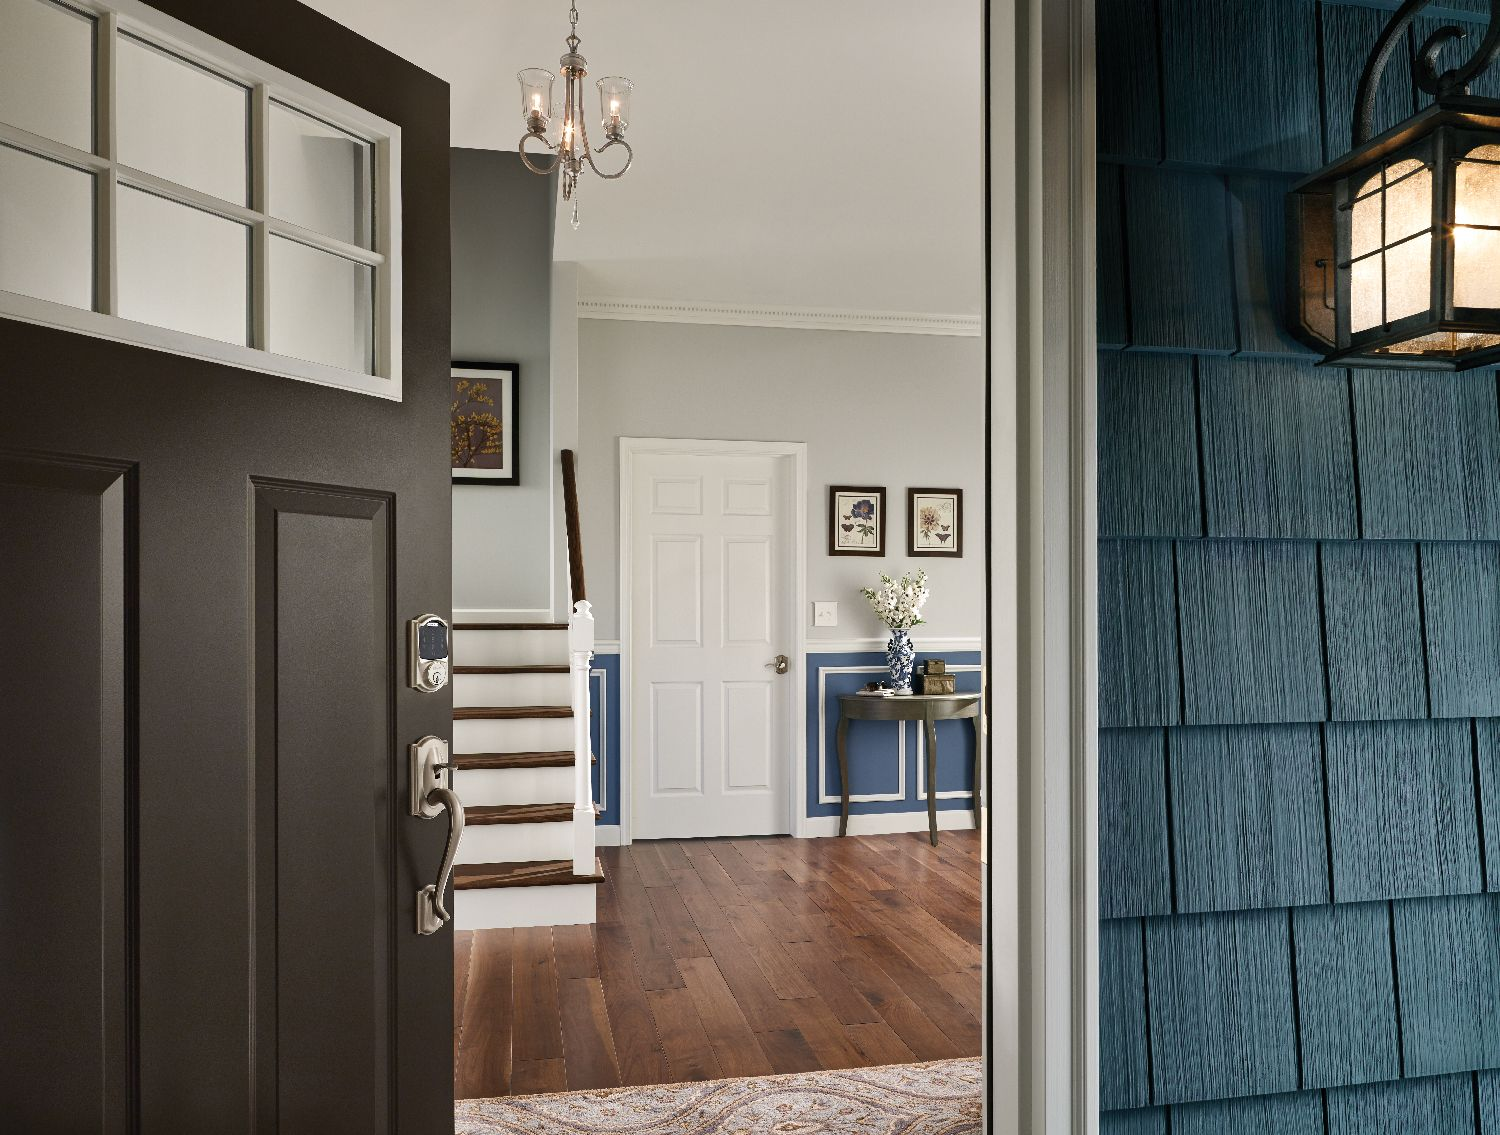 Schage Connect Electronic Lock Complements This Colonial Foyer Beautifully Strong Meets Style Electronic Deadbolt Home Safety Home